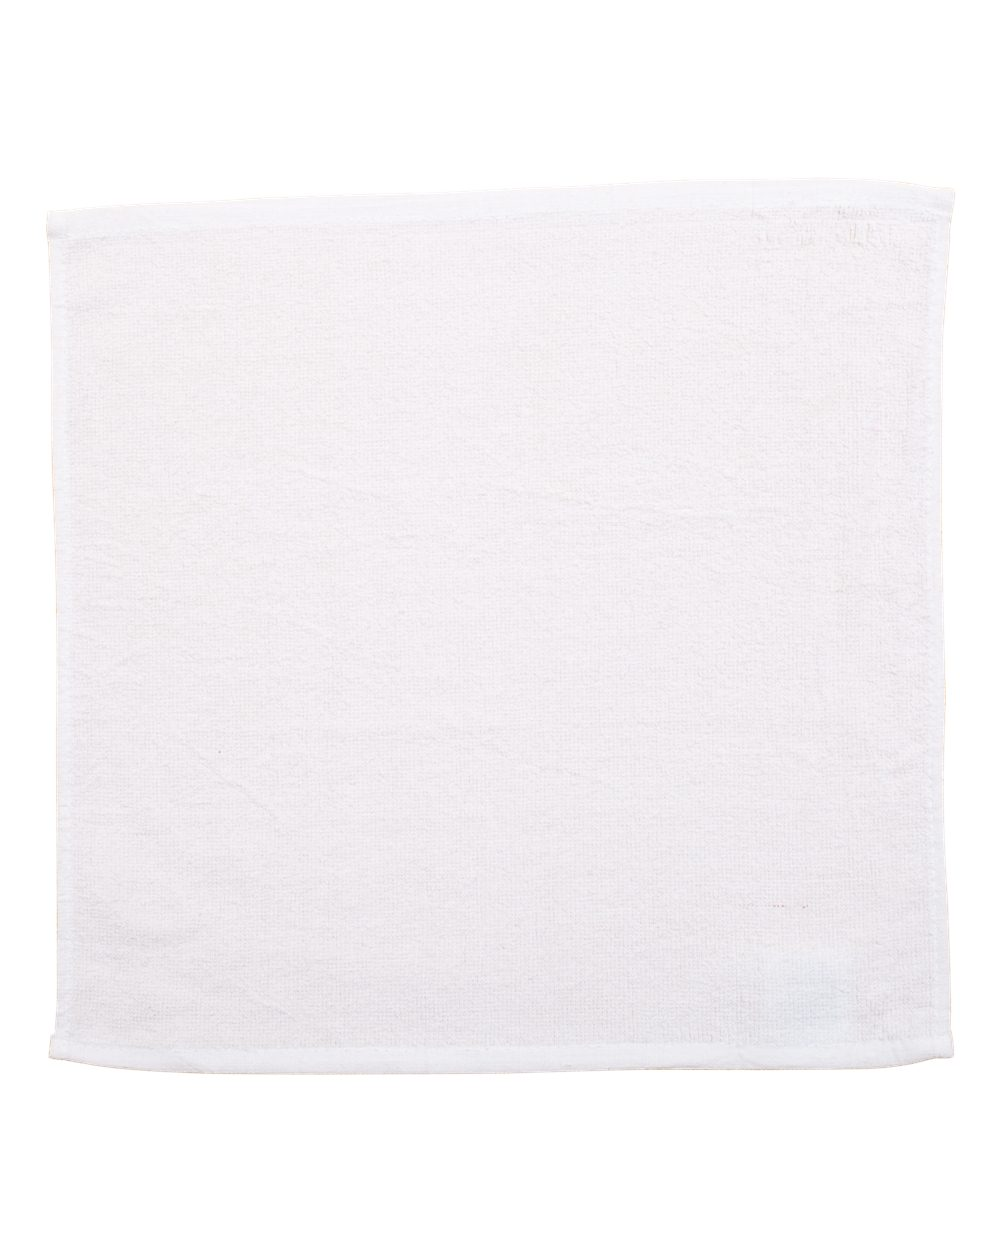 Carmel Towel Co. Square Rally Towel